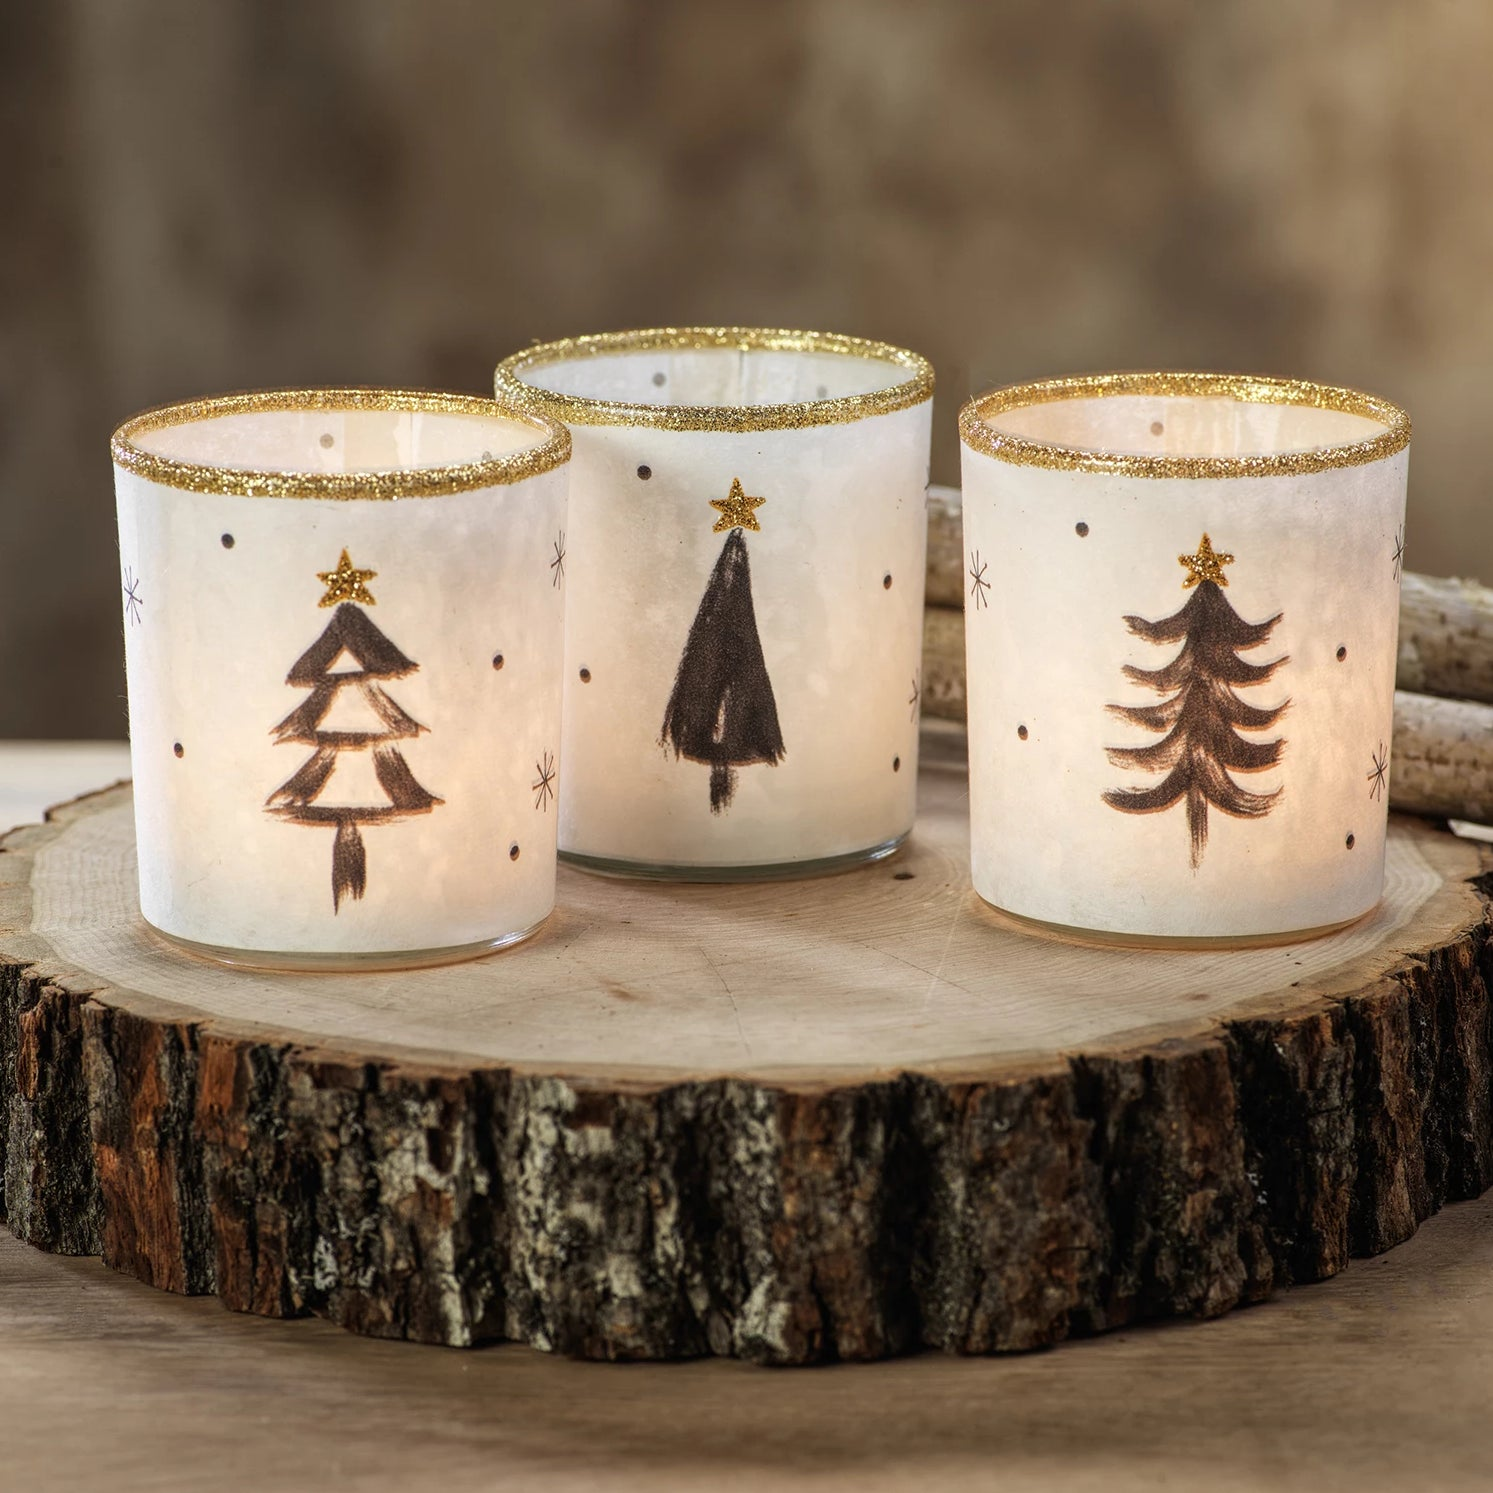 Tree Glass Tealight Holder - Set of 3 - CARLYLE AVENUE